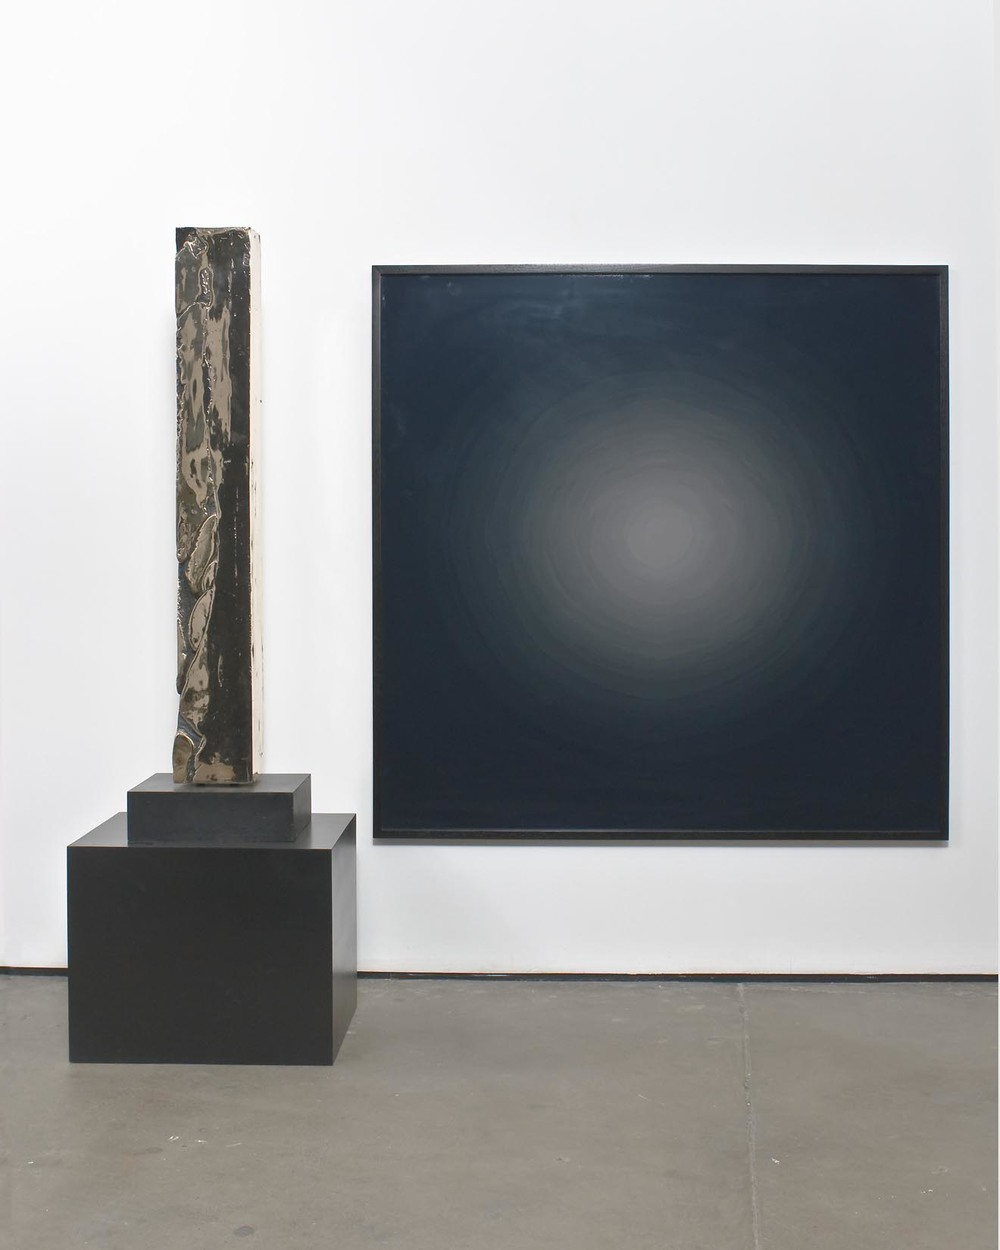 Anthony Pearson Untitled (Drop Cast Slab Arrangement) 2008 Uncoated hi-polished bronze sculpture, base, pedestal, framed c-print mounted to acrylic in artist's frame: 144.8 x 162.6 x 50.8 cm